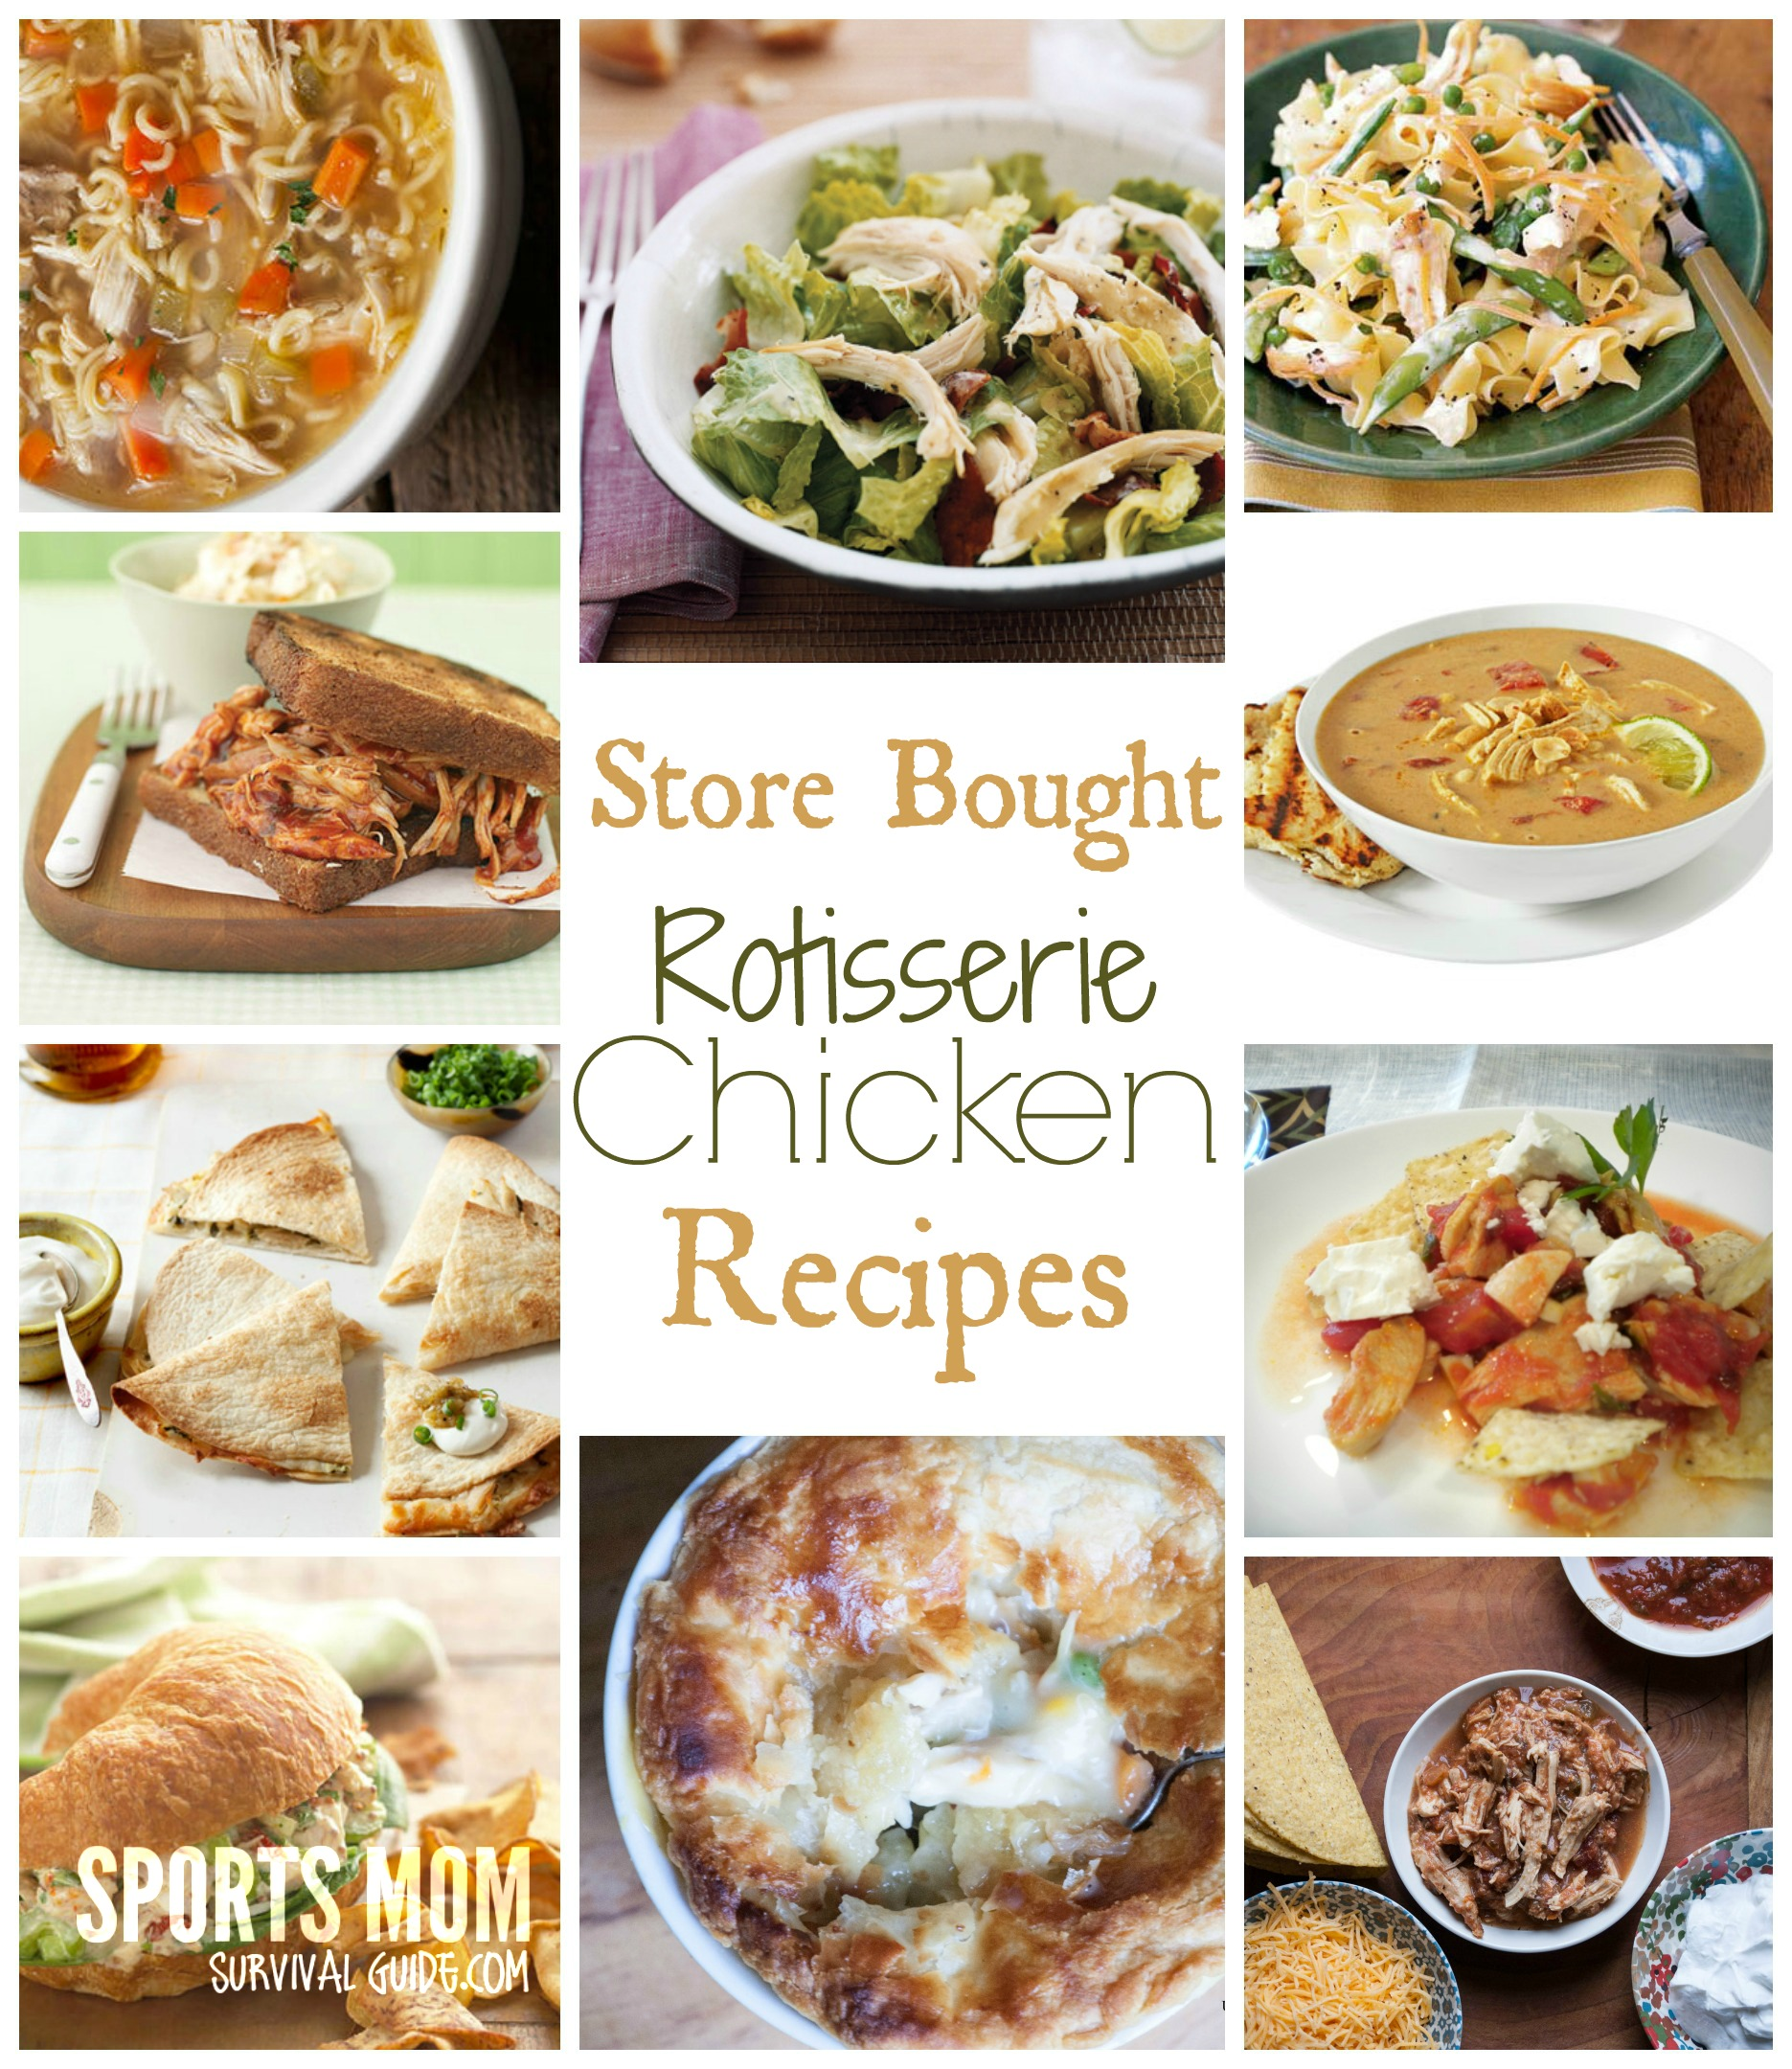 Recipes using rotisserie chickens